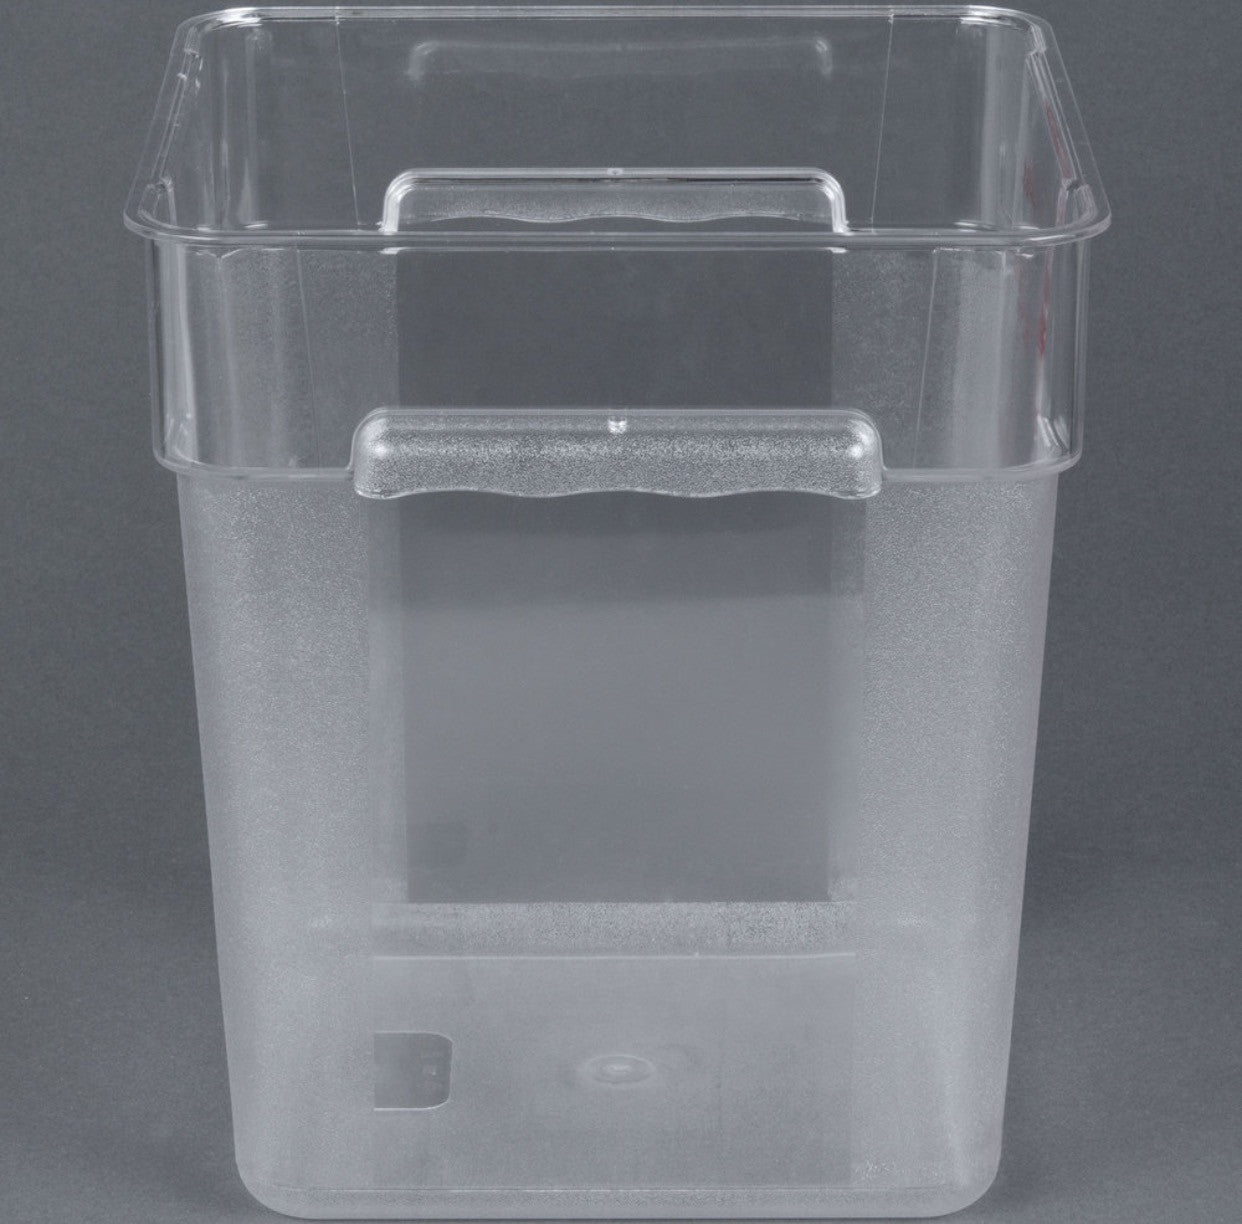 Thunder Group Polycarbonate Sqaure Food Storage, Clear (Case-6pcs), Polycarbonate - eKitchenary